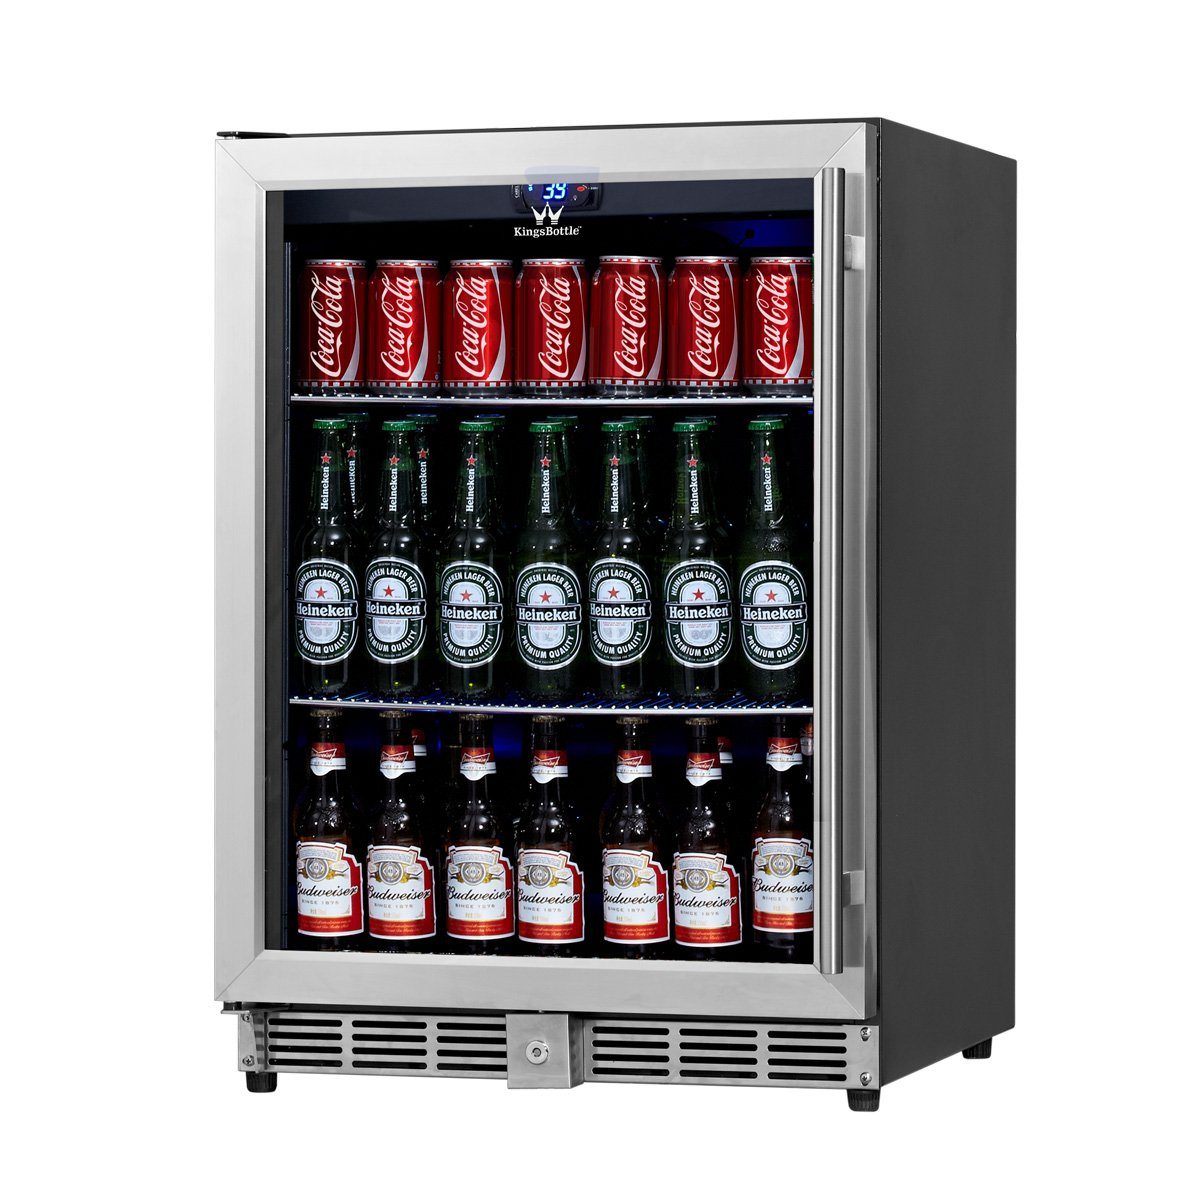 Amazon.com KingsBottle 160 Can Beverage Cooler Stainless Steel with Glass Door Appliances  sc 1 st  Amazon.com & Amazon.com: KingsBottle 160 Can Beverage Cooler Stainless Steel ... pezcame.com